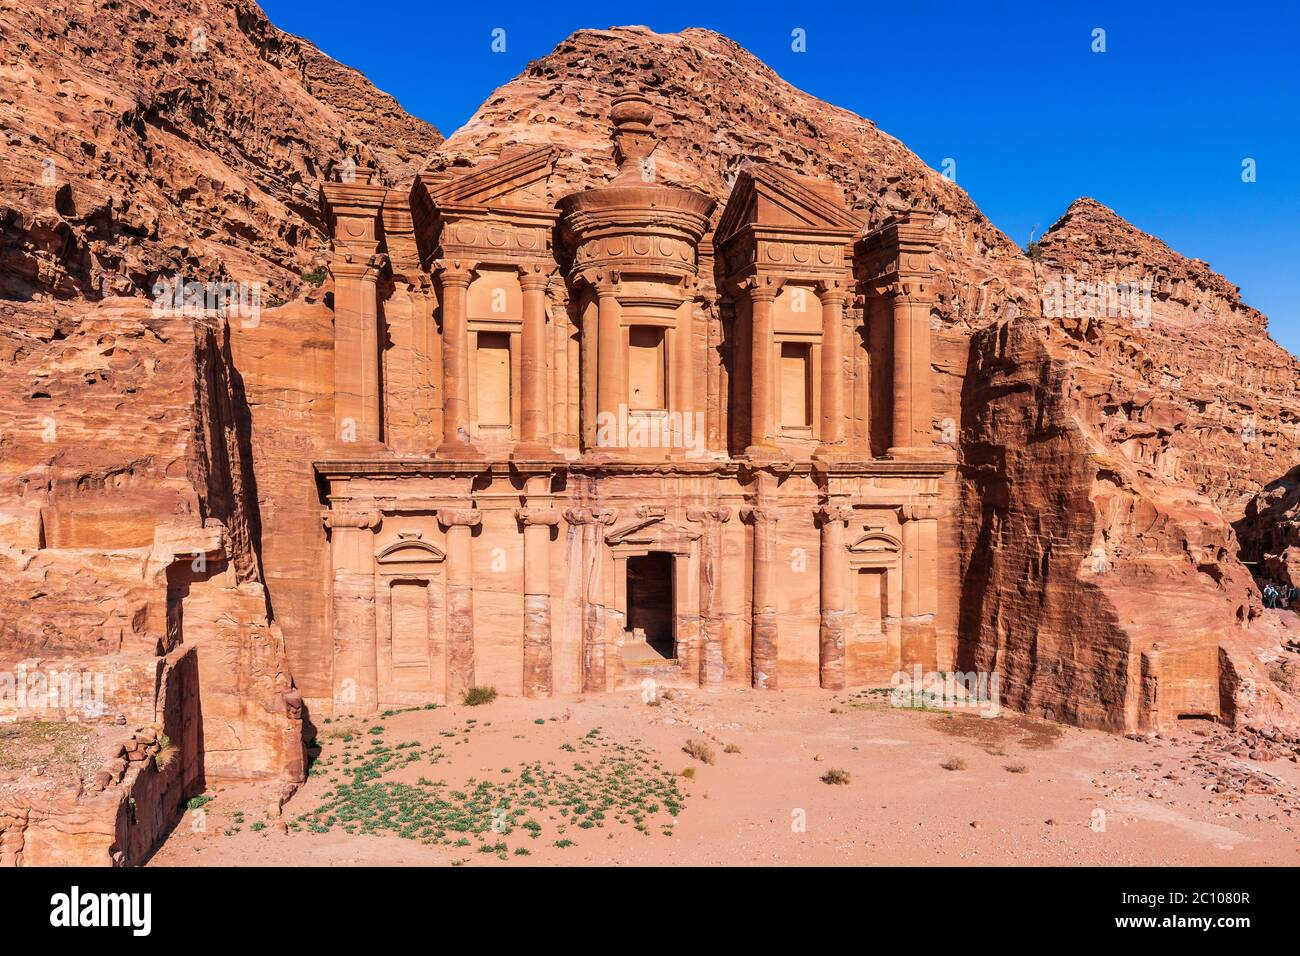 Petra, Jordan. El Deir (The Monastery) in Petra, the capital of the ancient Nabatean Kingdom. Stock Photo